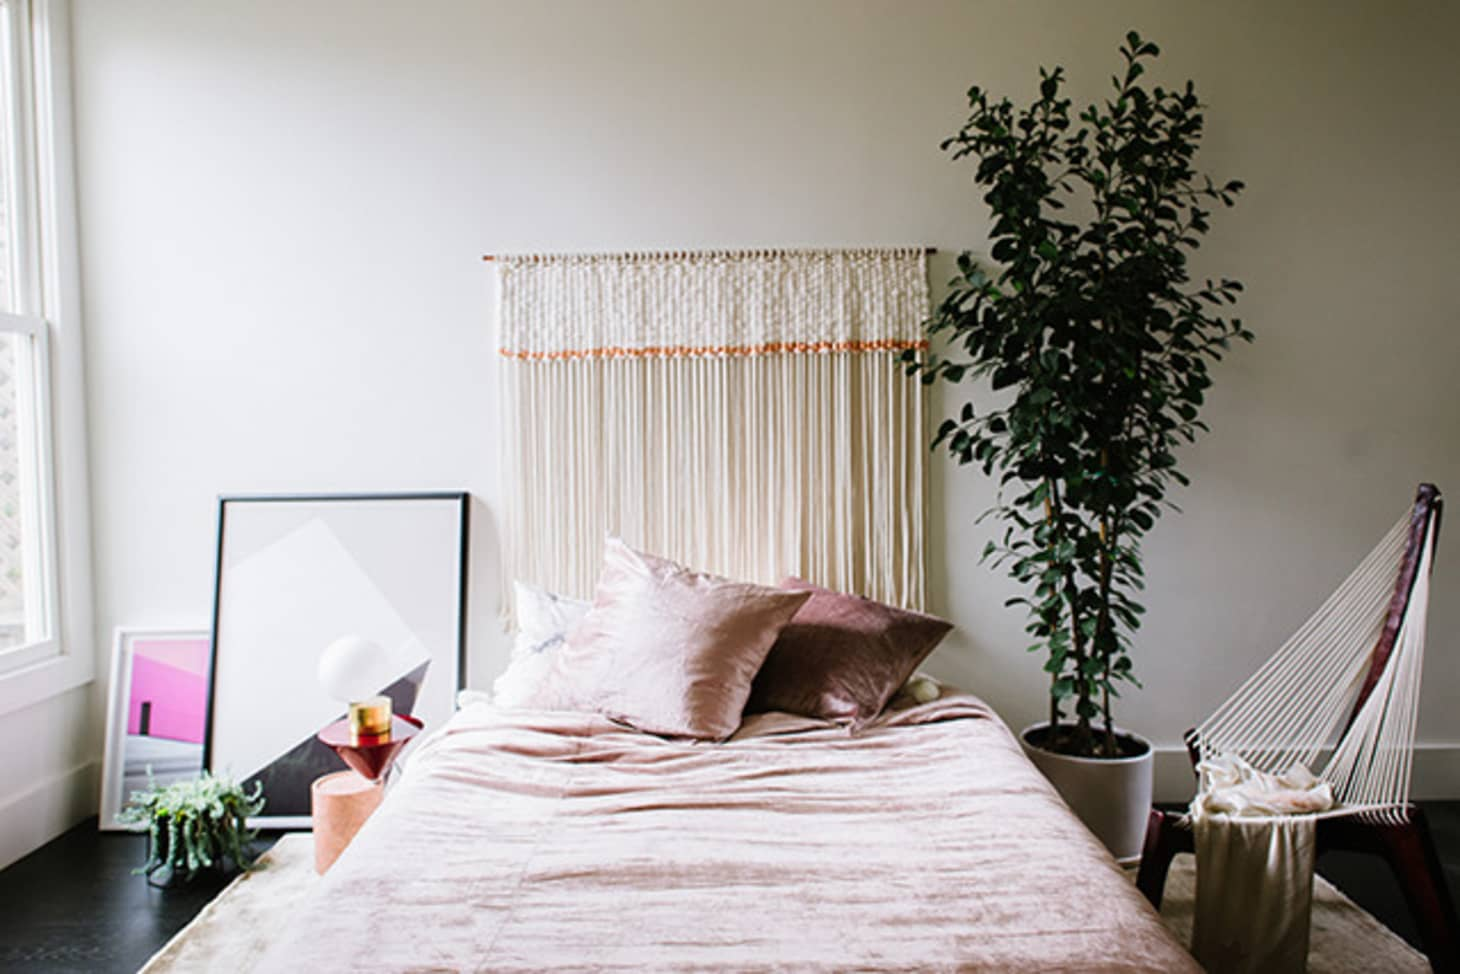 11 ideas for how to frame a bed without a headboard apartment therapy - Bed without headboard ideas ...